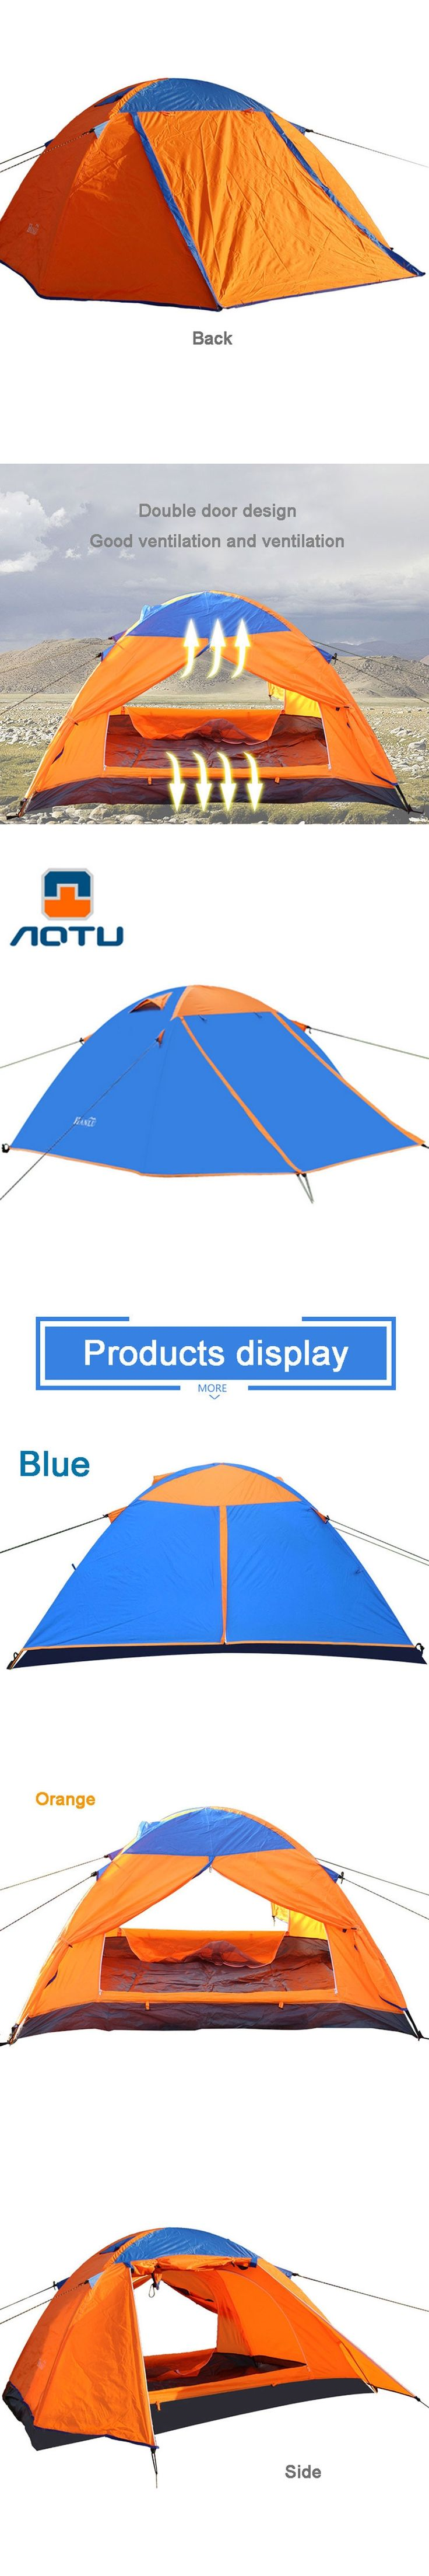 2 person double door aluminum rod tent Double Layer Outdoor Camping Hike Travel Play Tent Aluminum Pole